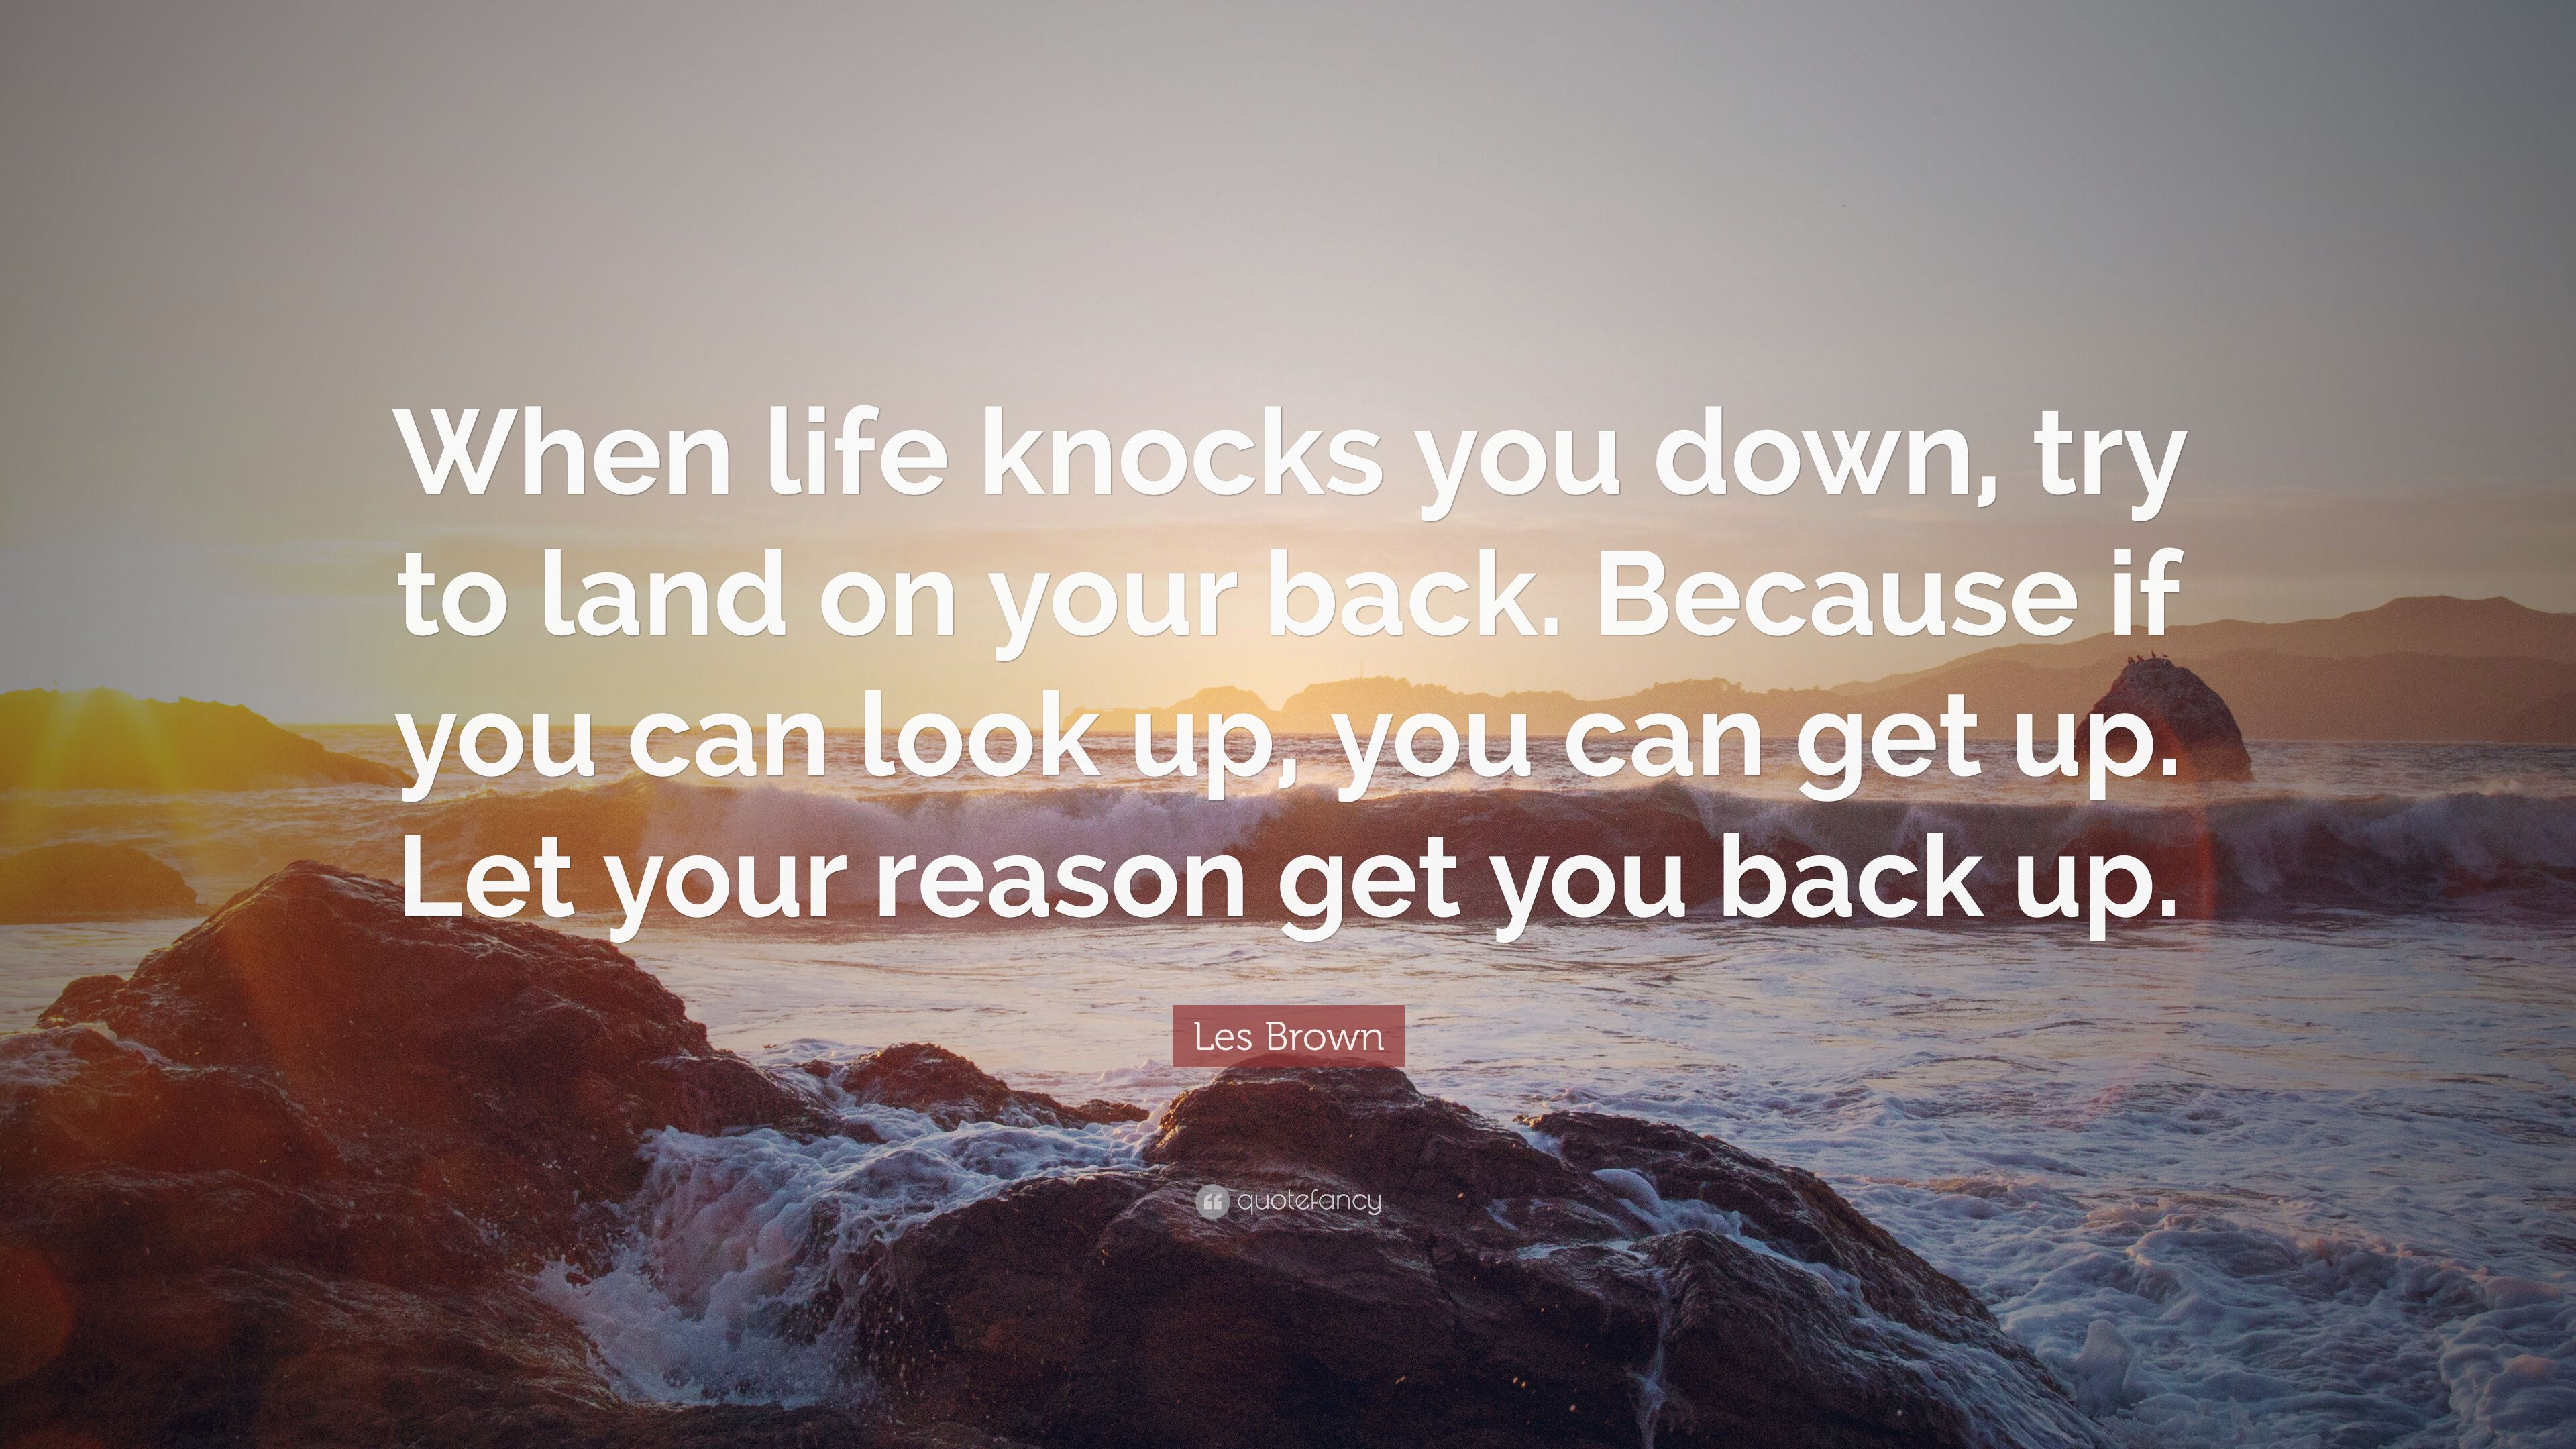 Les Brown Quote When Life Knocks You Down Try To Land On Your